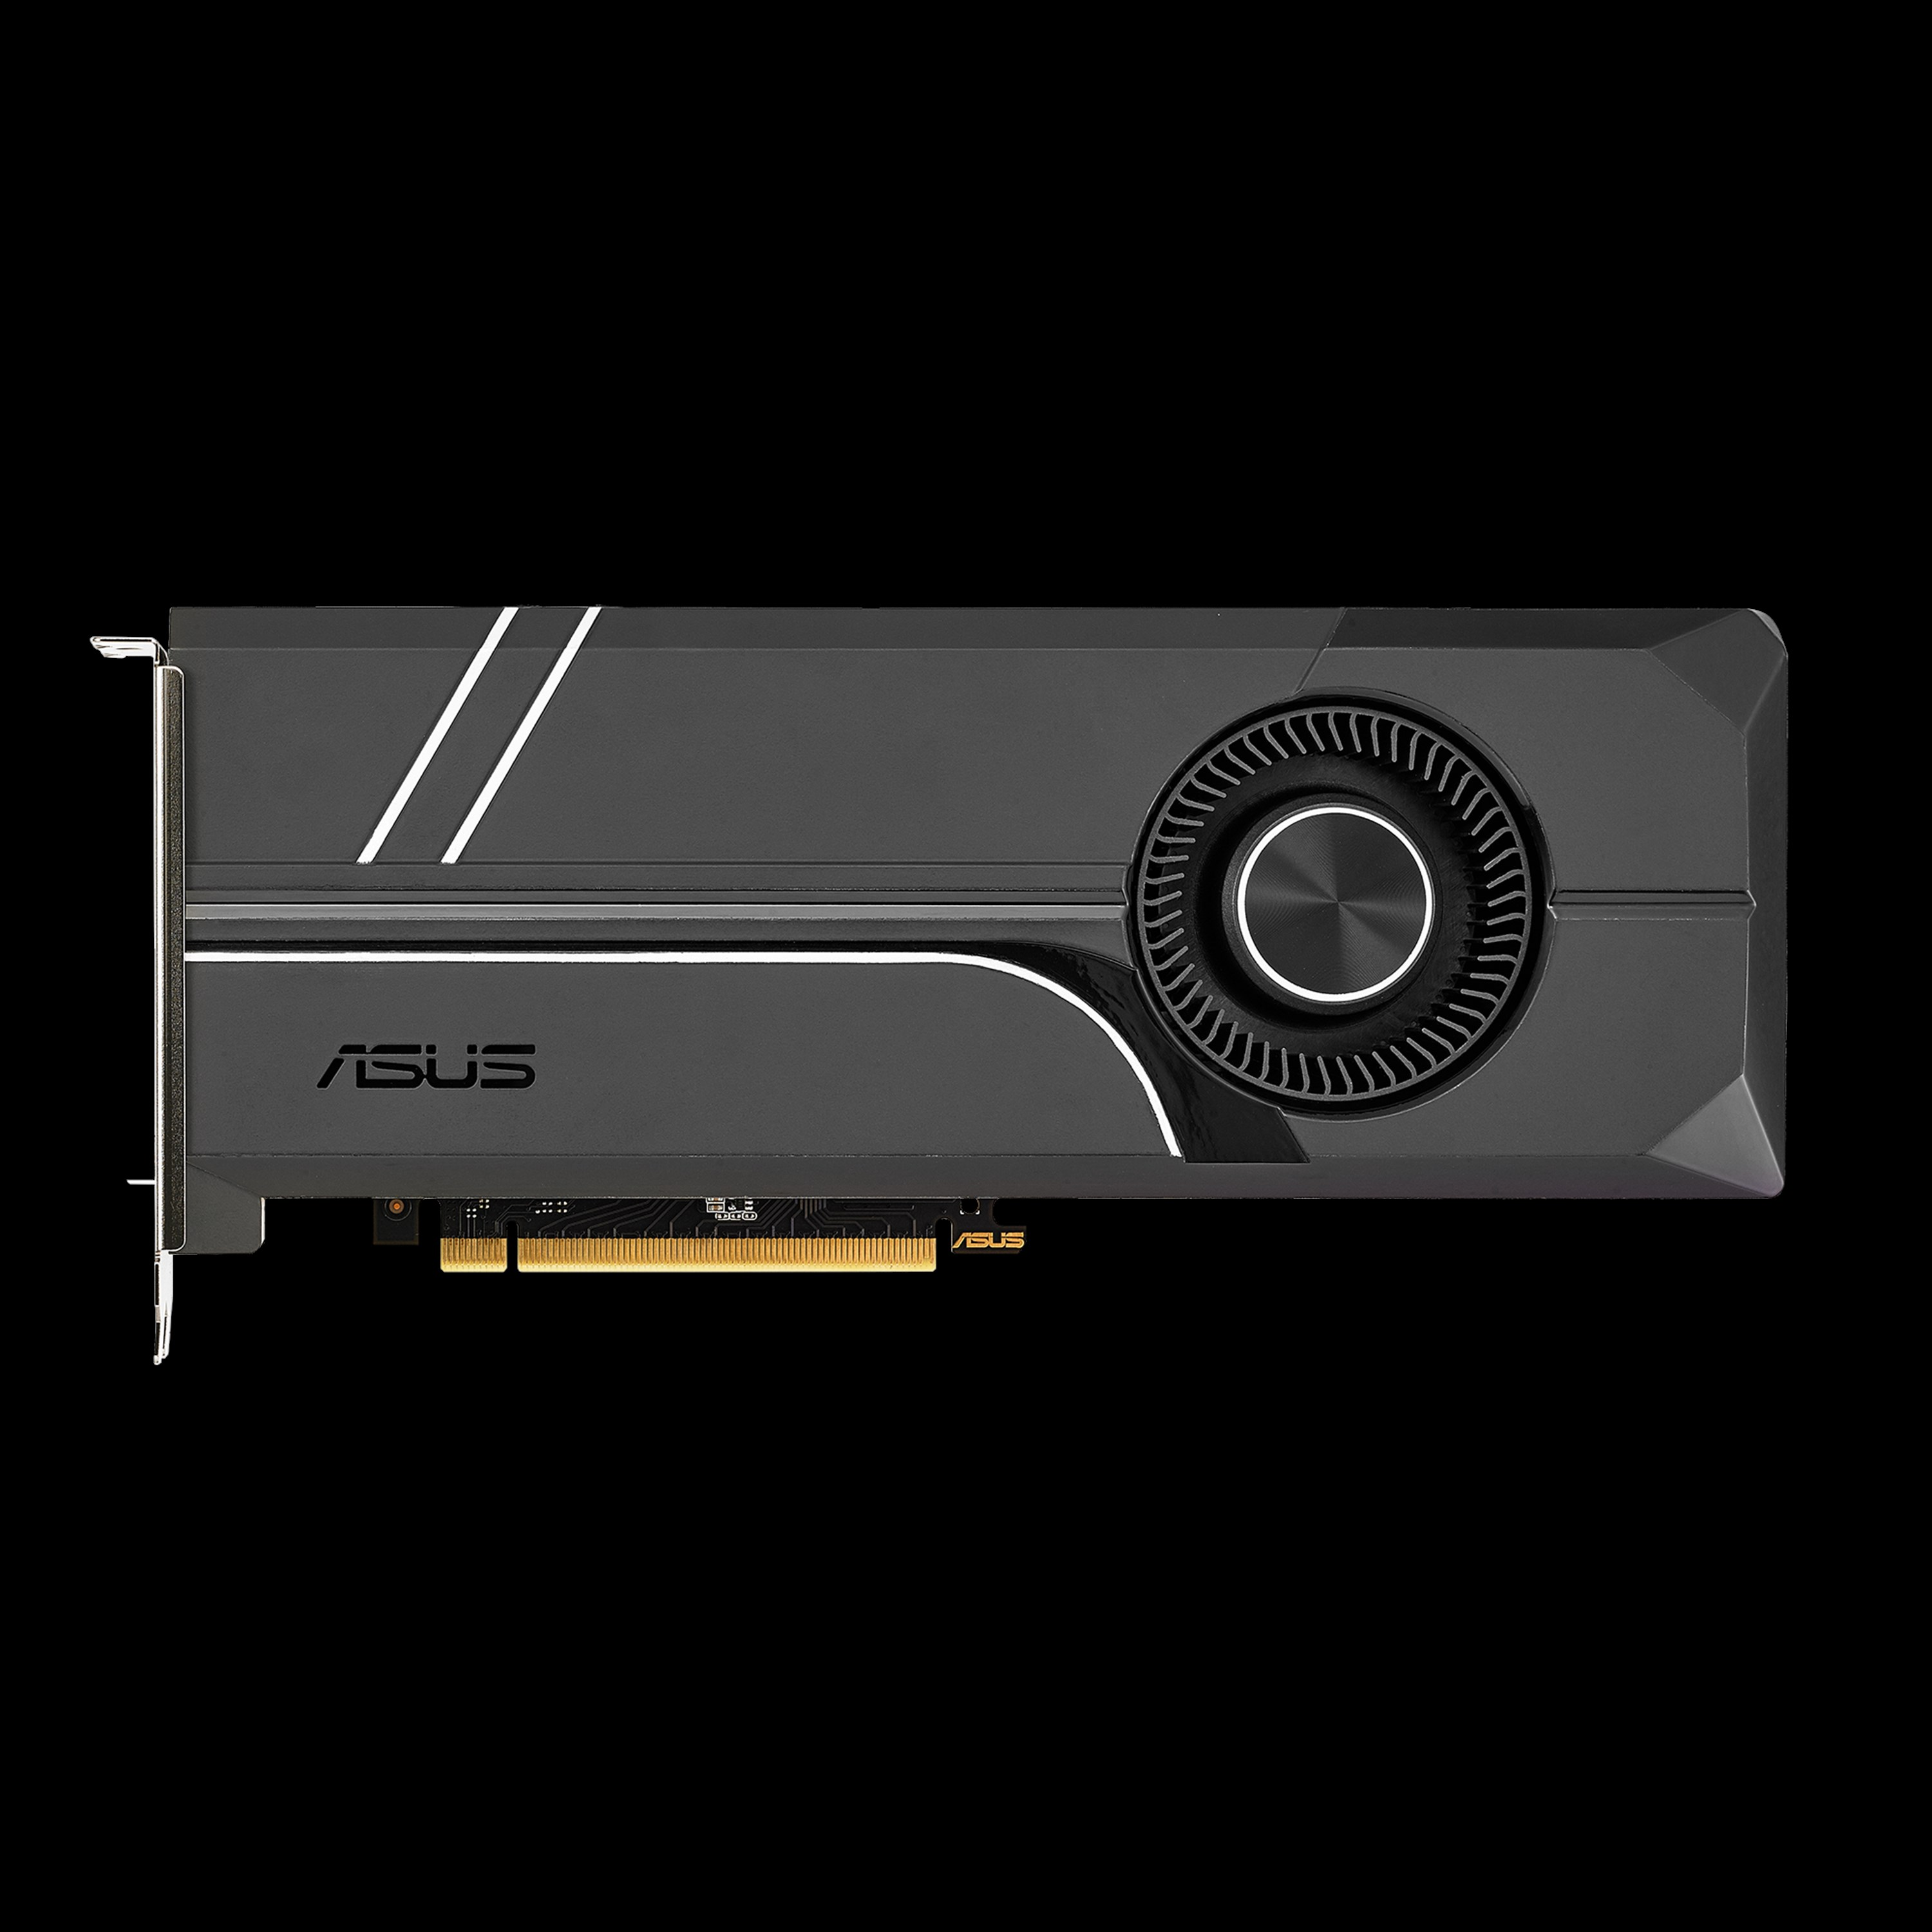 Asus Turbo-Gtx1080Ti-11G Graphics Card TURBO-GTX1080TI-11G by ASUS